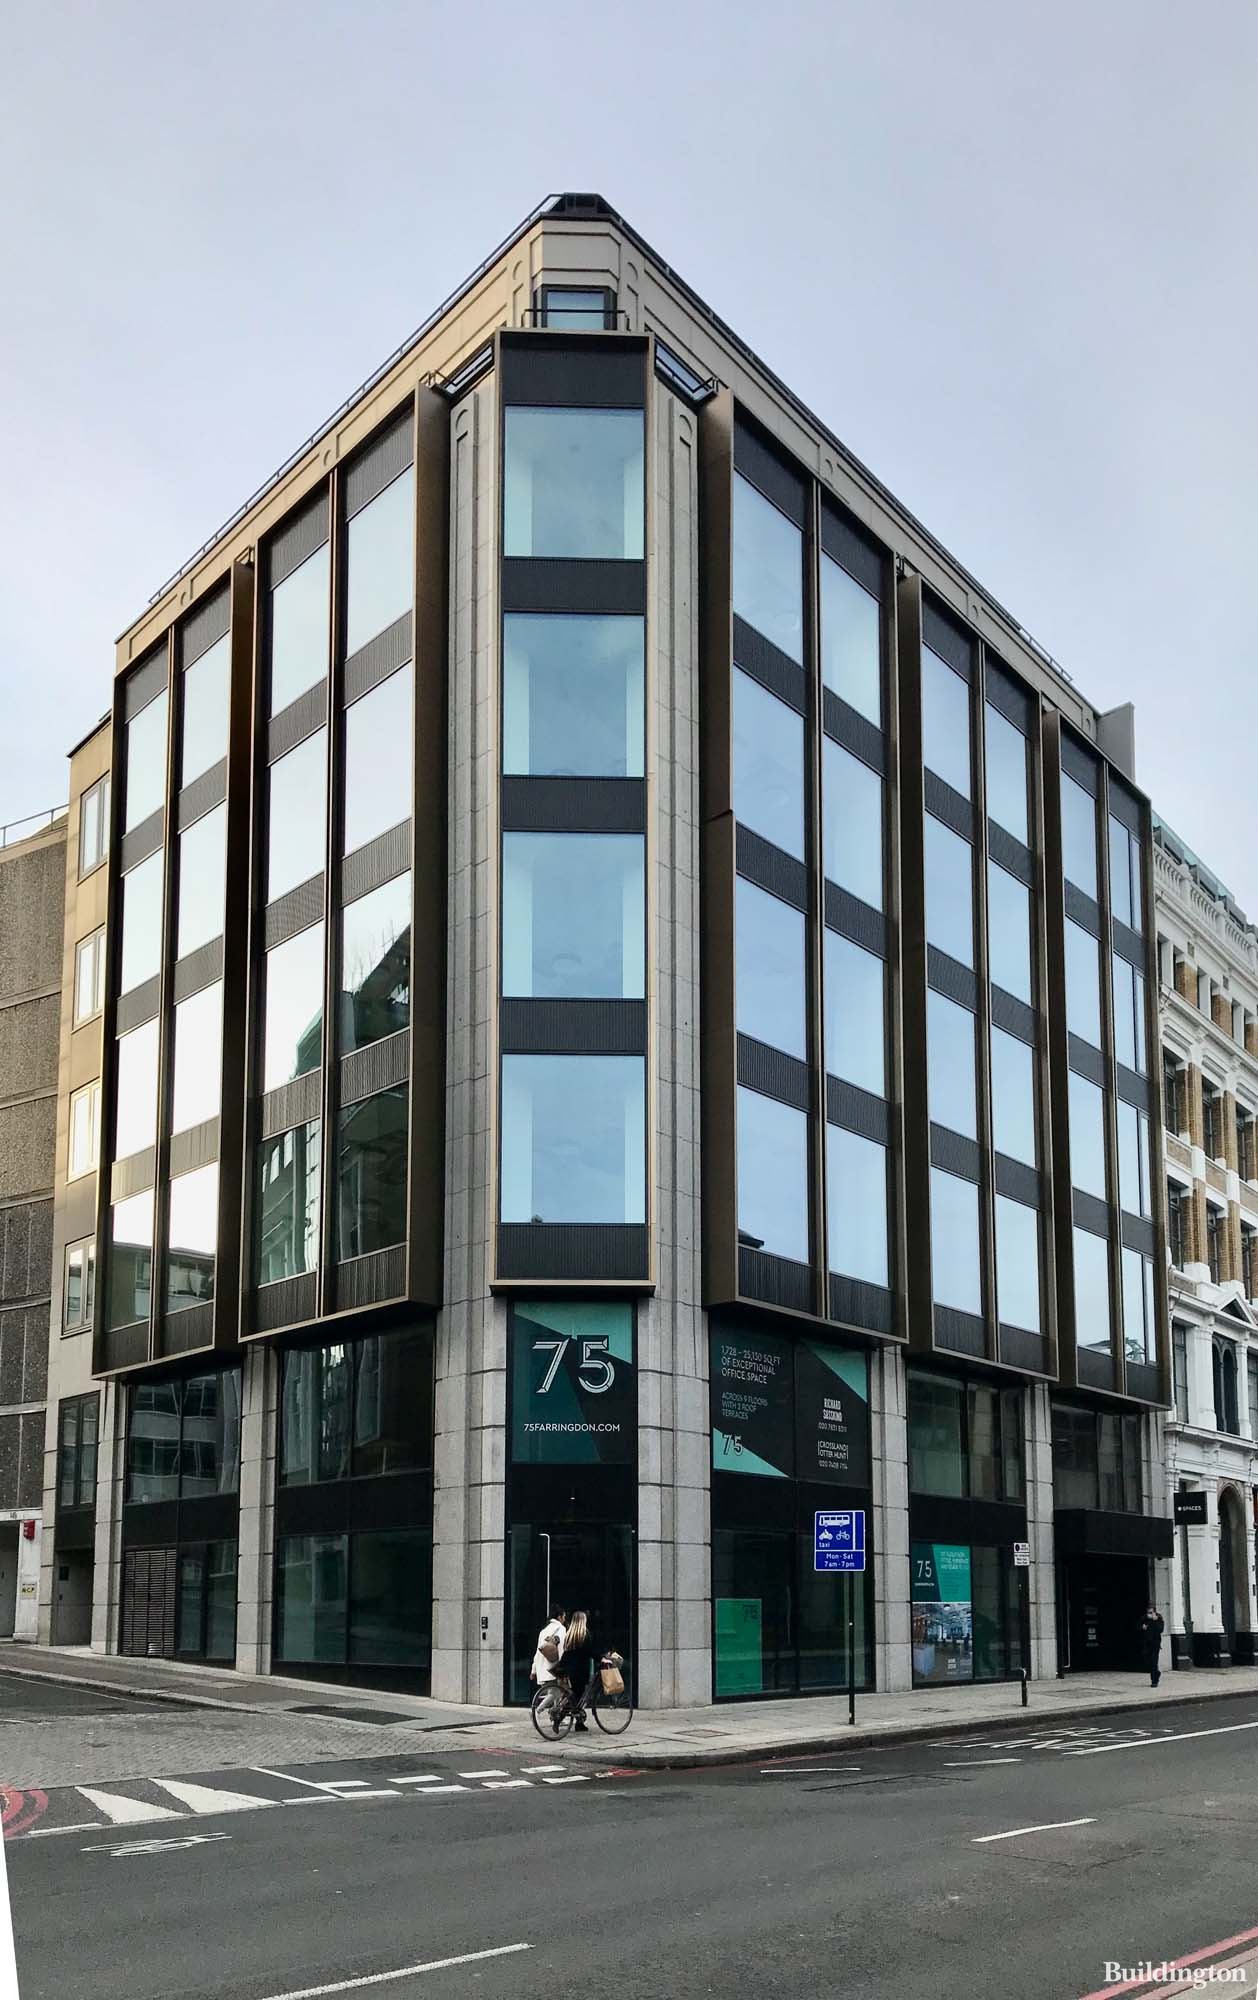 75 Farringdon Road building redeveloped by Orchard Street to the designs by Buckley Gray Yeoman.